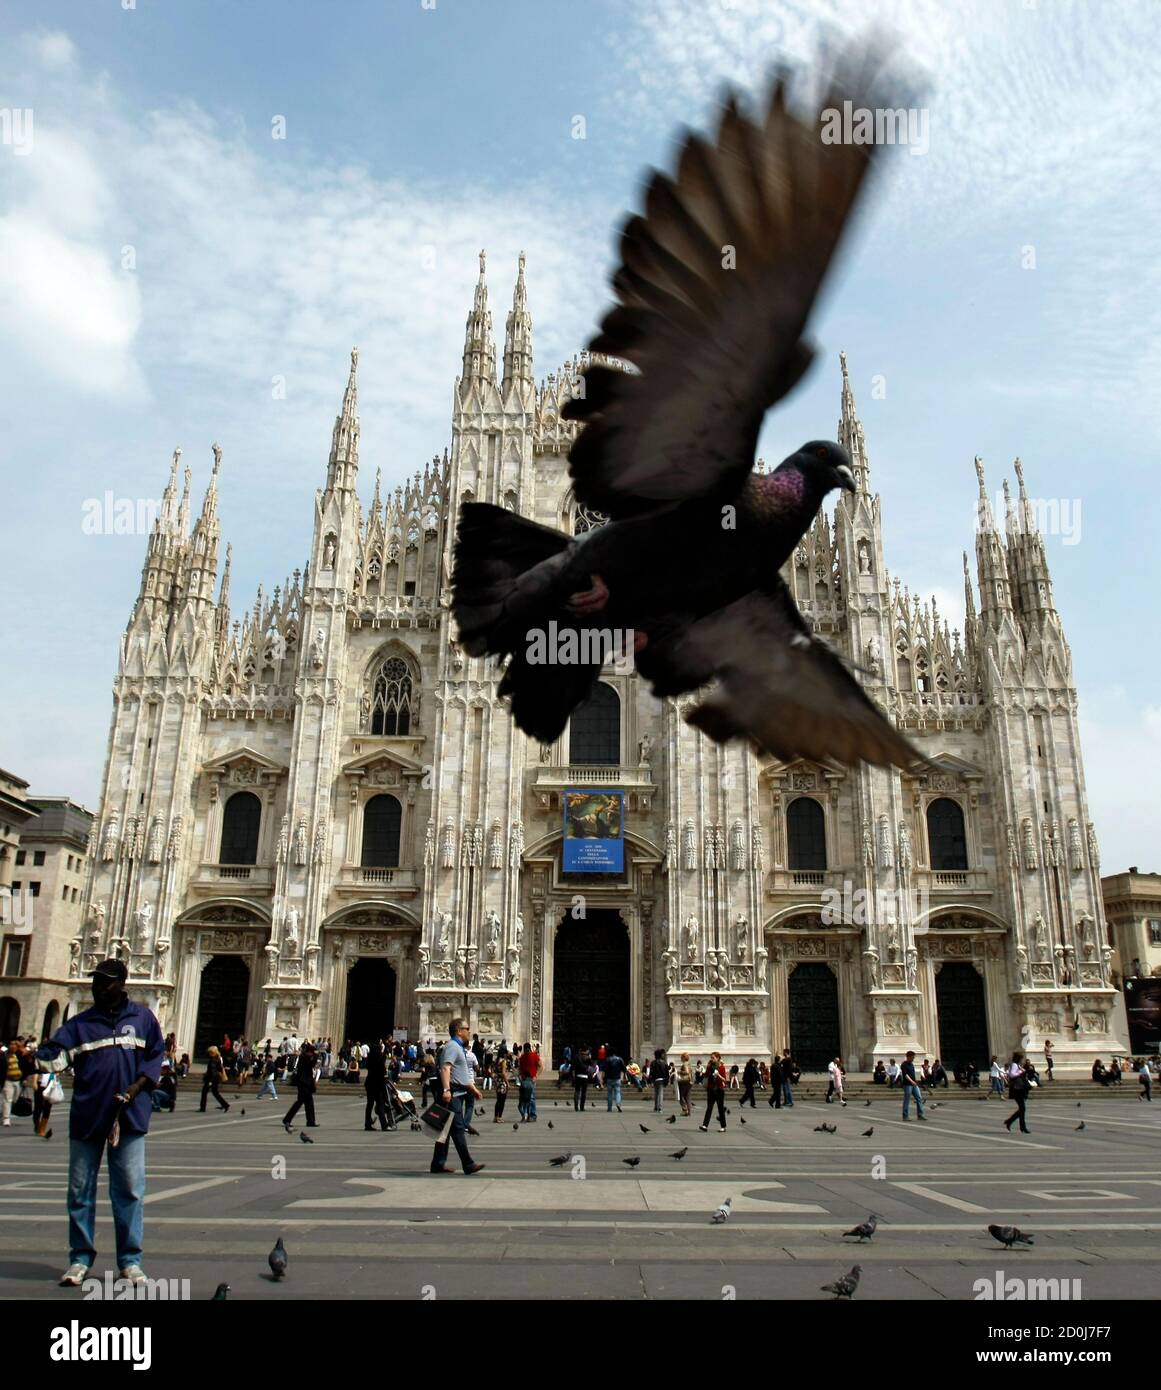 A pigeon flies in front of Duomo cathedral in Milan May 2, 2011.  REUTERS/Alessandro Garofalo     ( ITALY - Tags: ANIMALS RELIGION) Foto Stock